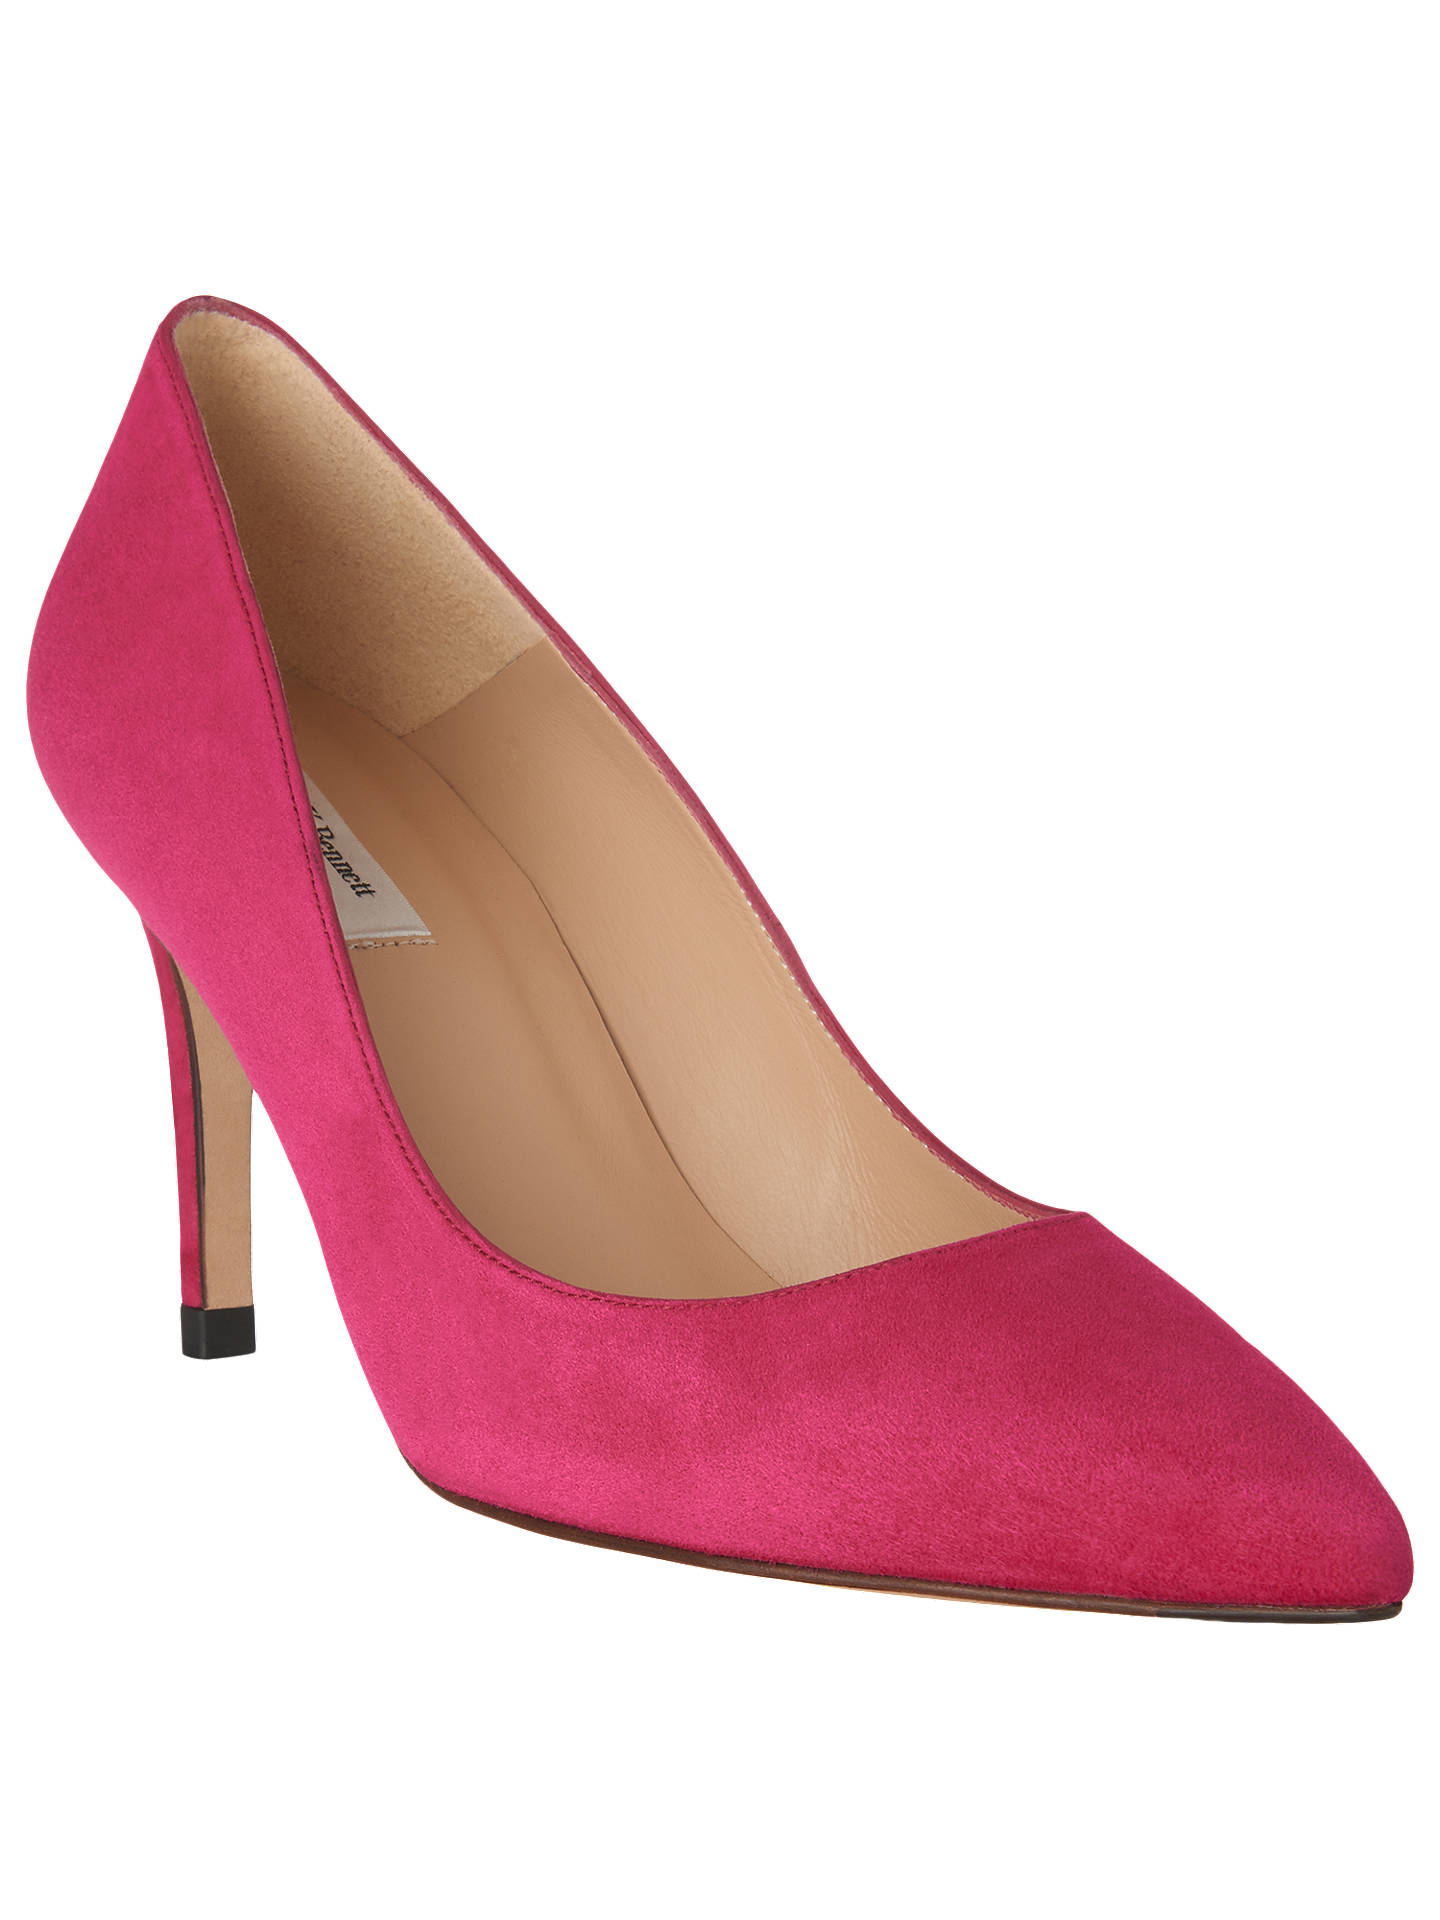 36b26932ca16 Buy L.K.Bennett Florete Pointed Toe Court Shoes, Pink, 2 Online at  johnlewis.